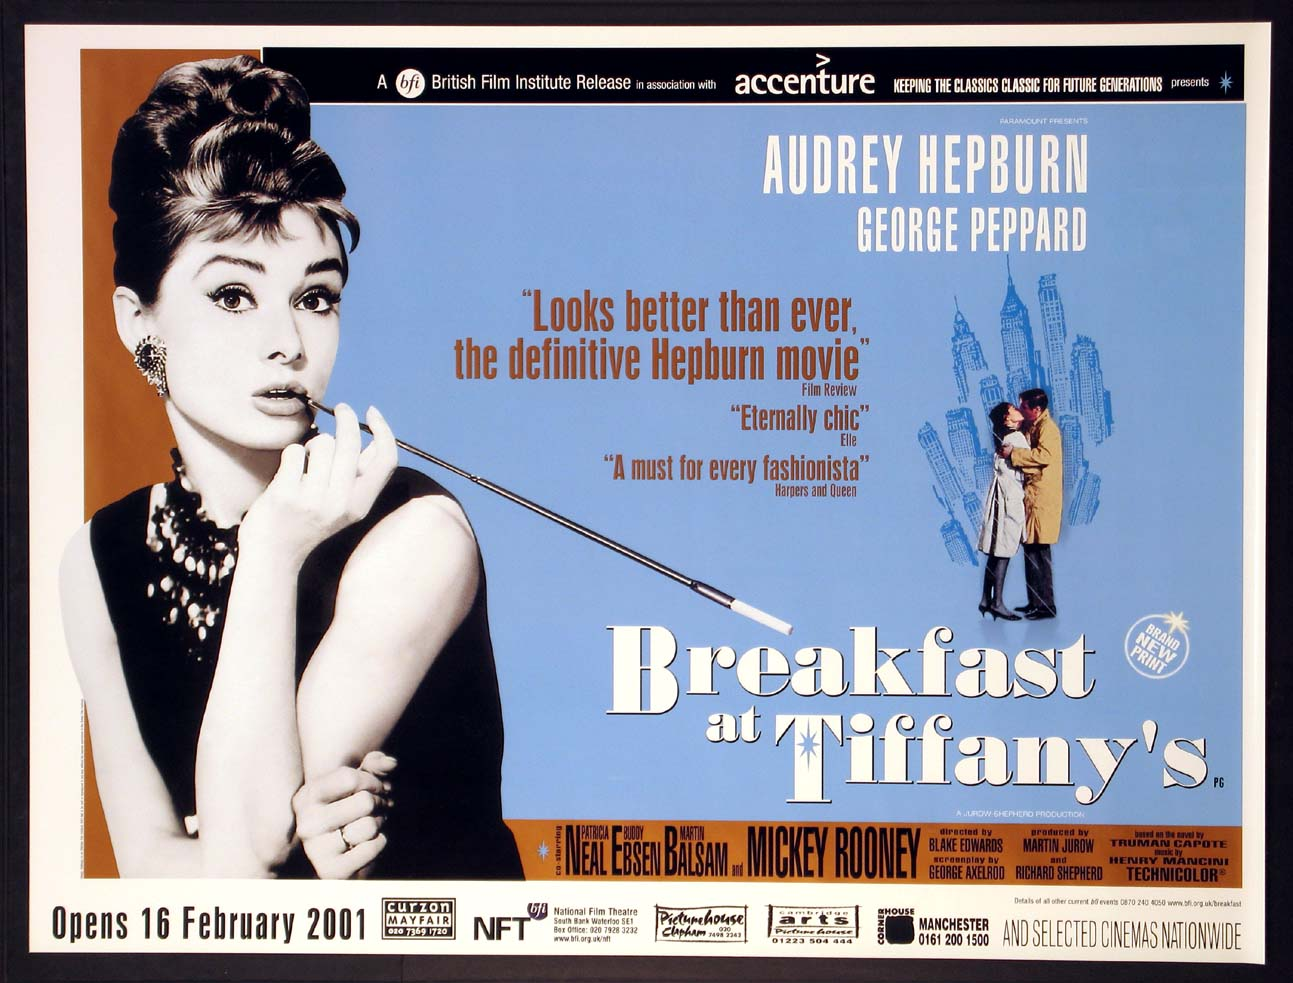 BREAKFAST AT TIFFANY'S (Breakfast at Tiffanys) - Special British Film Institute release @ FilmPosters.com